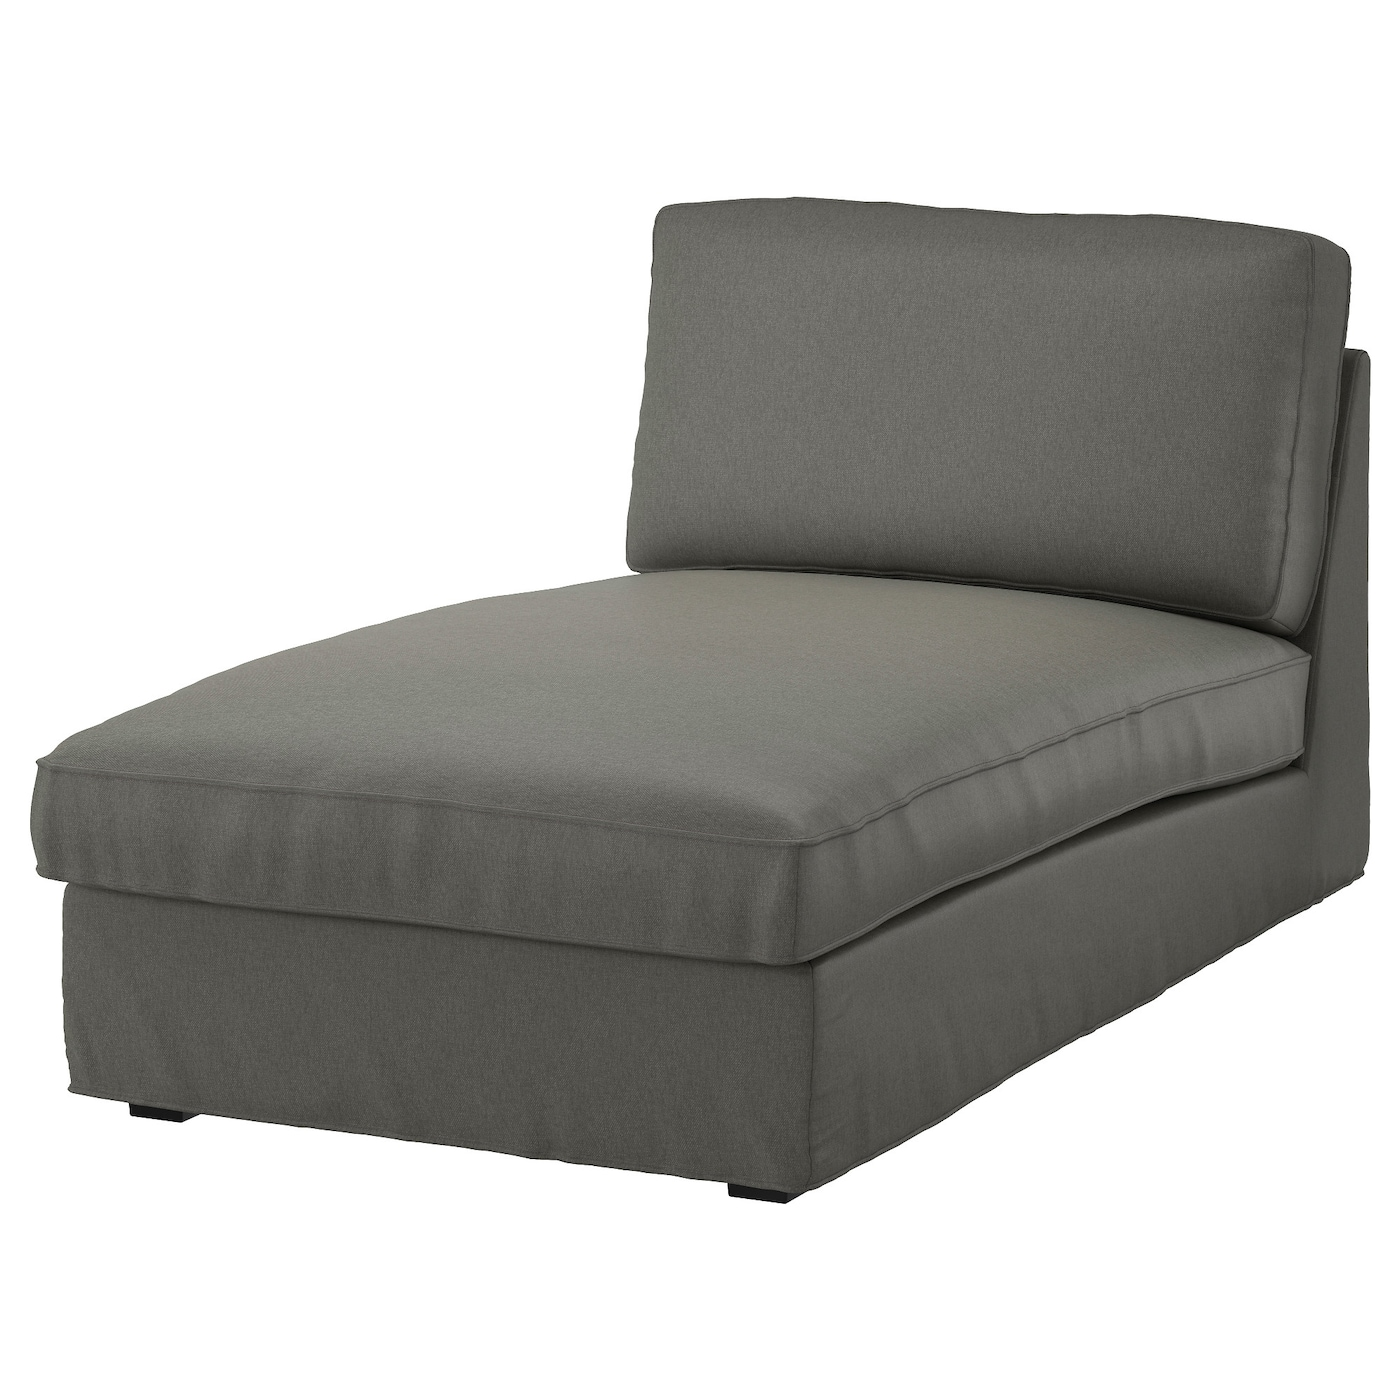 ikea kivik chaise cover 28 images kivik chaise cover orrsta light gray ikea kivik sofa. Black Bedroom Furniture Sets. Home Design Ideas